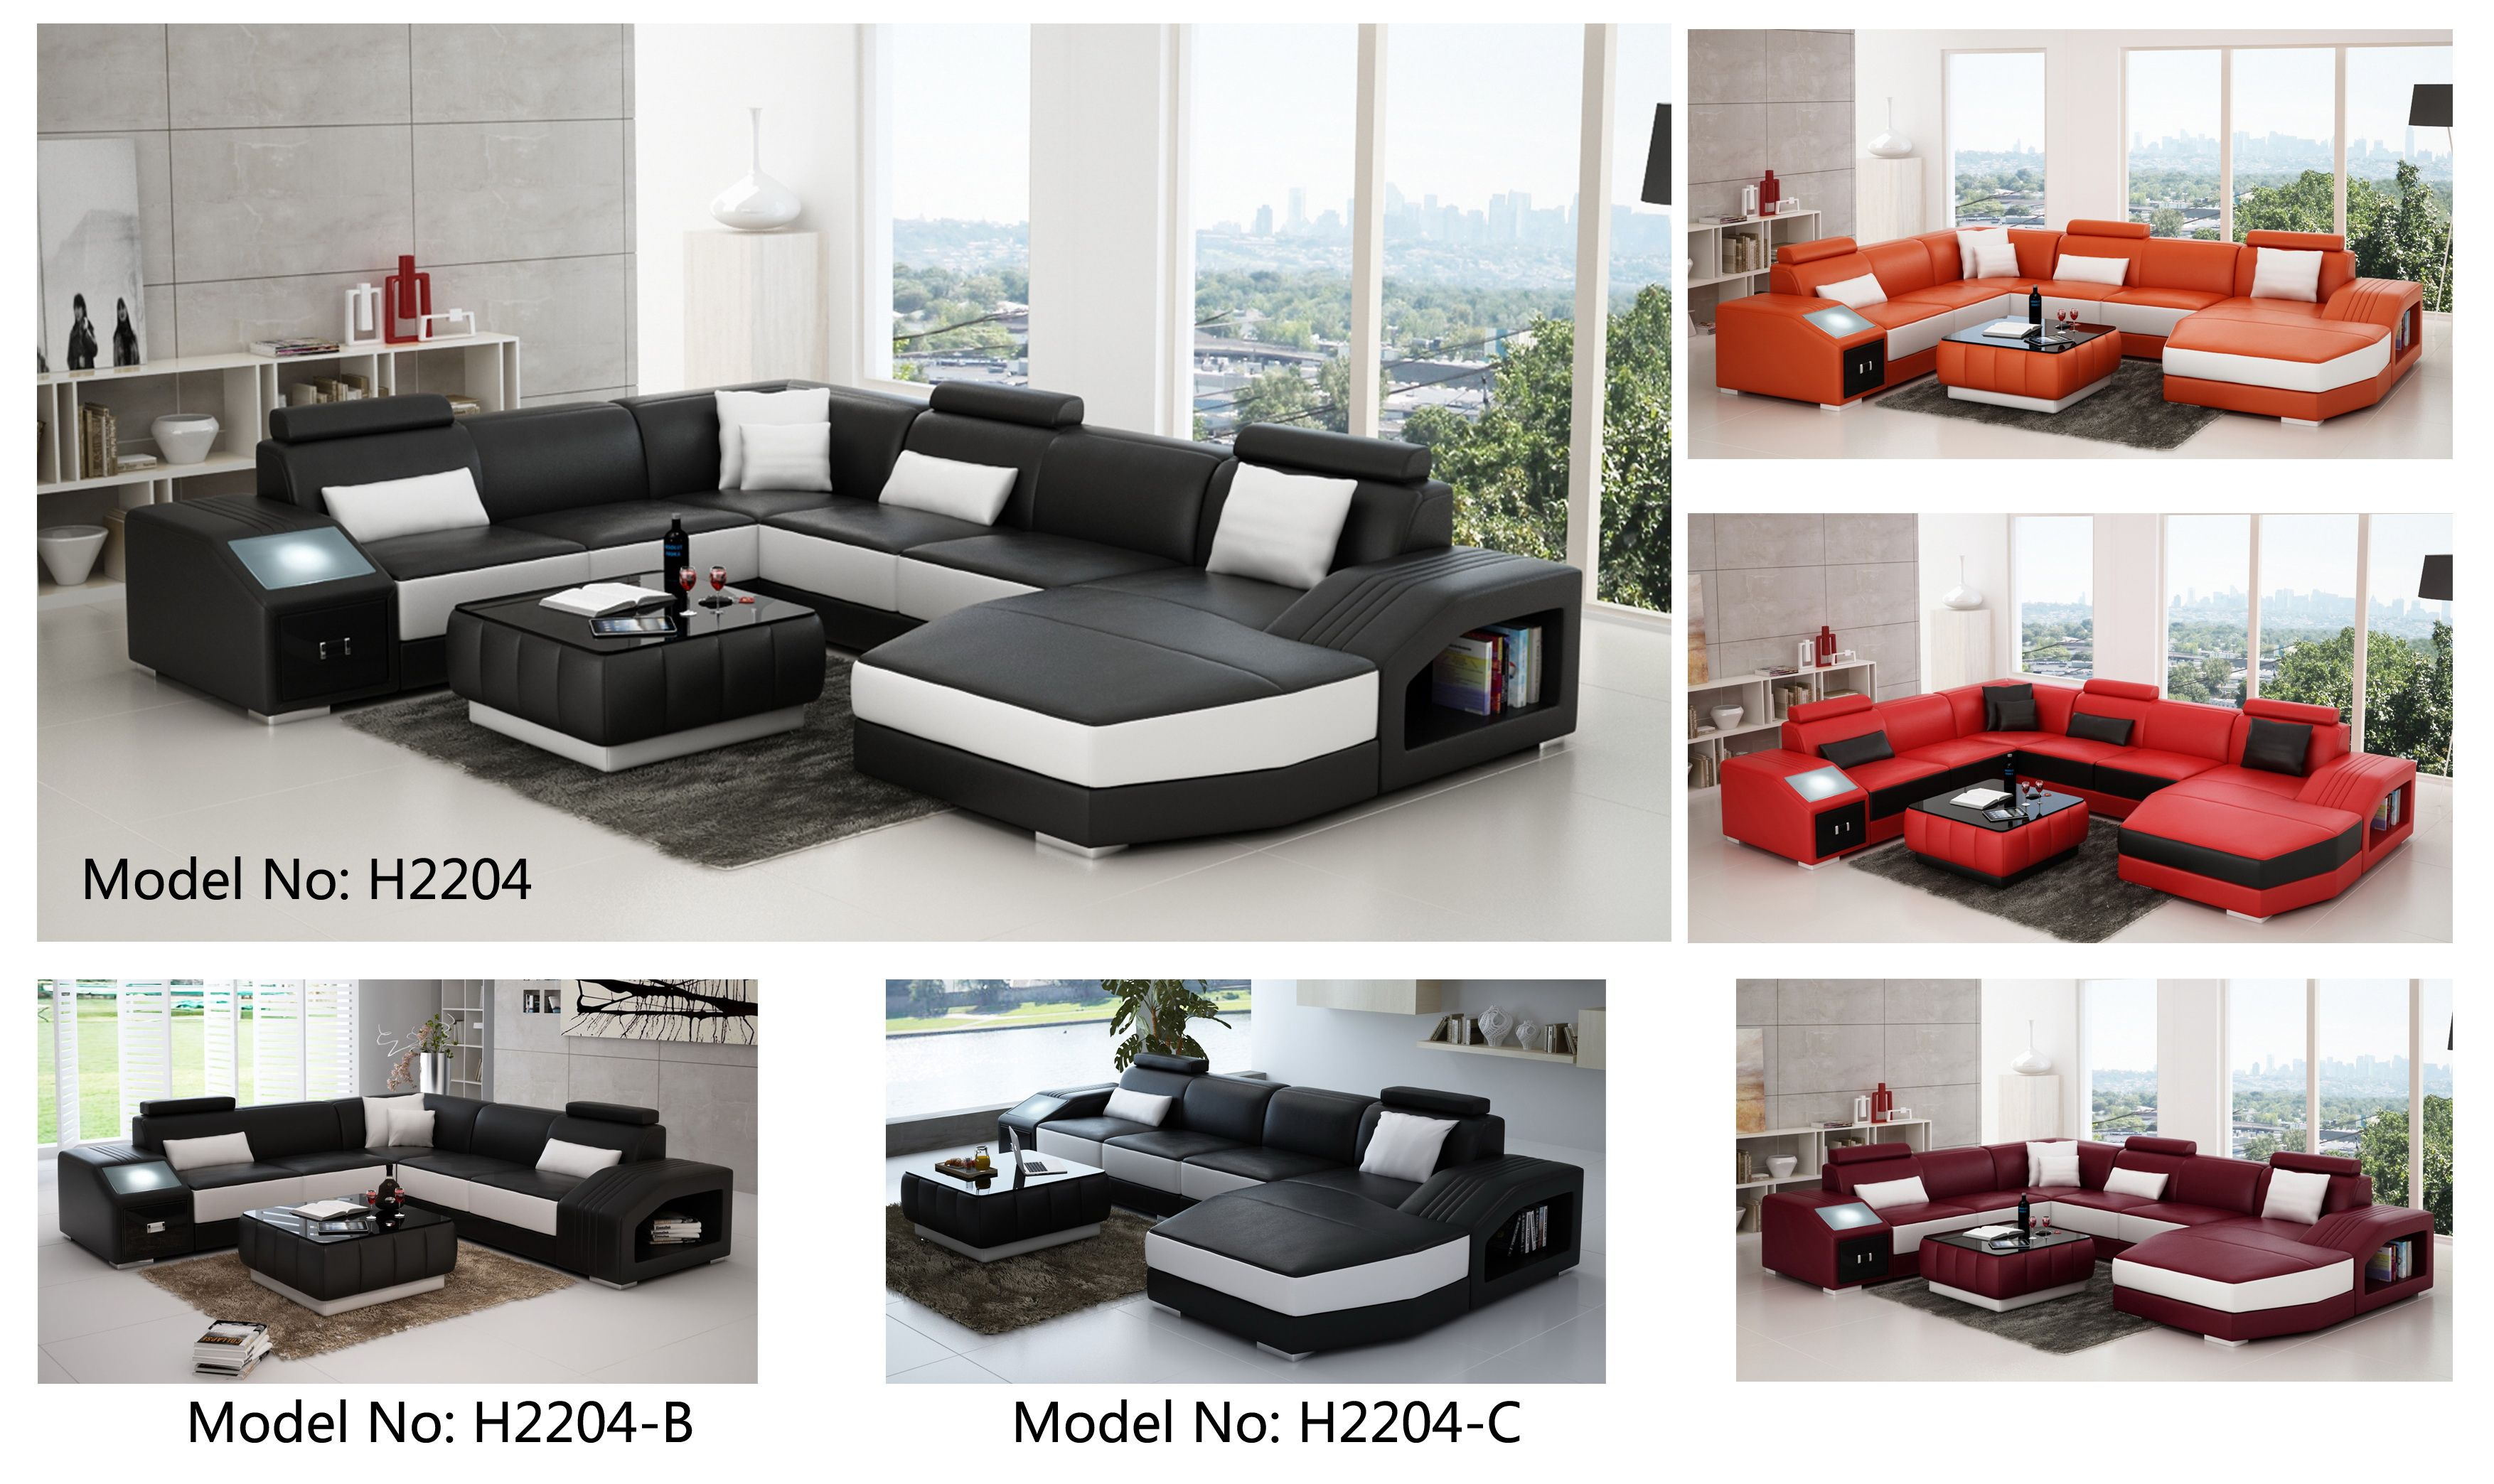 vatar sofa original design diy outdoor ana white all patents with more than 15 years experience in manufacturing modern leather customized products are available